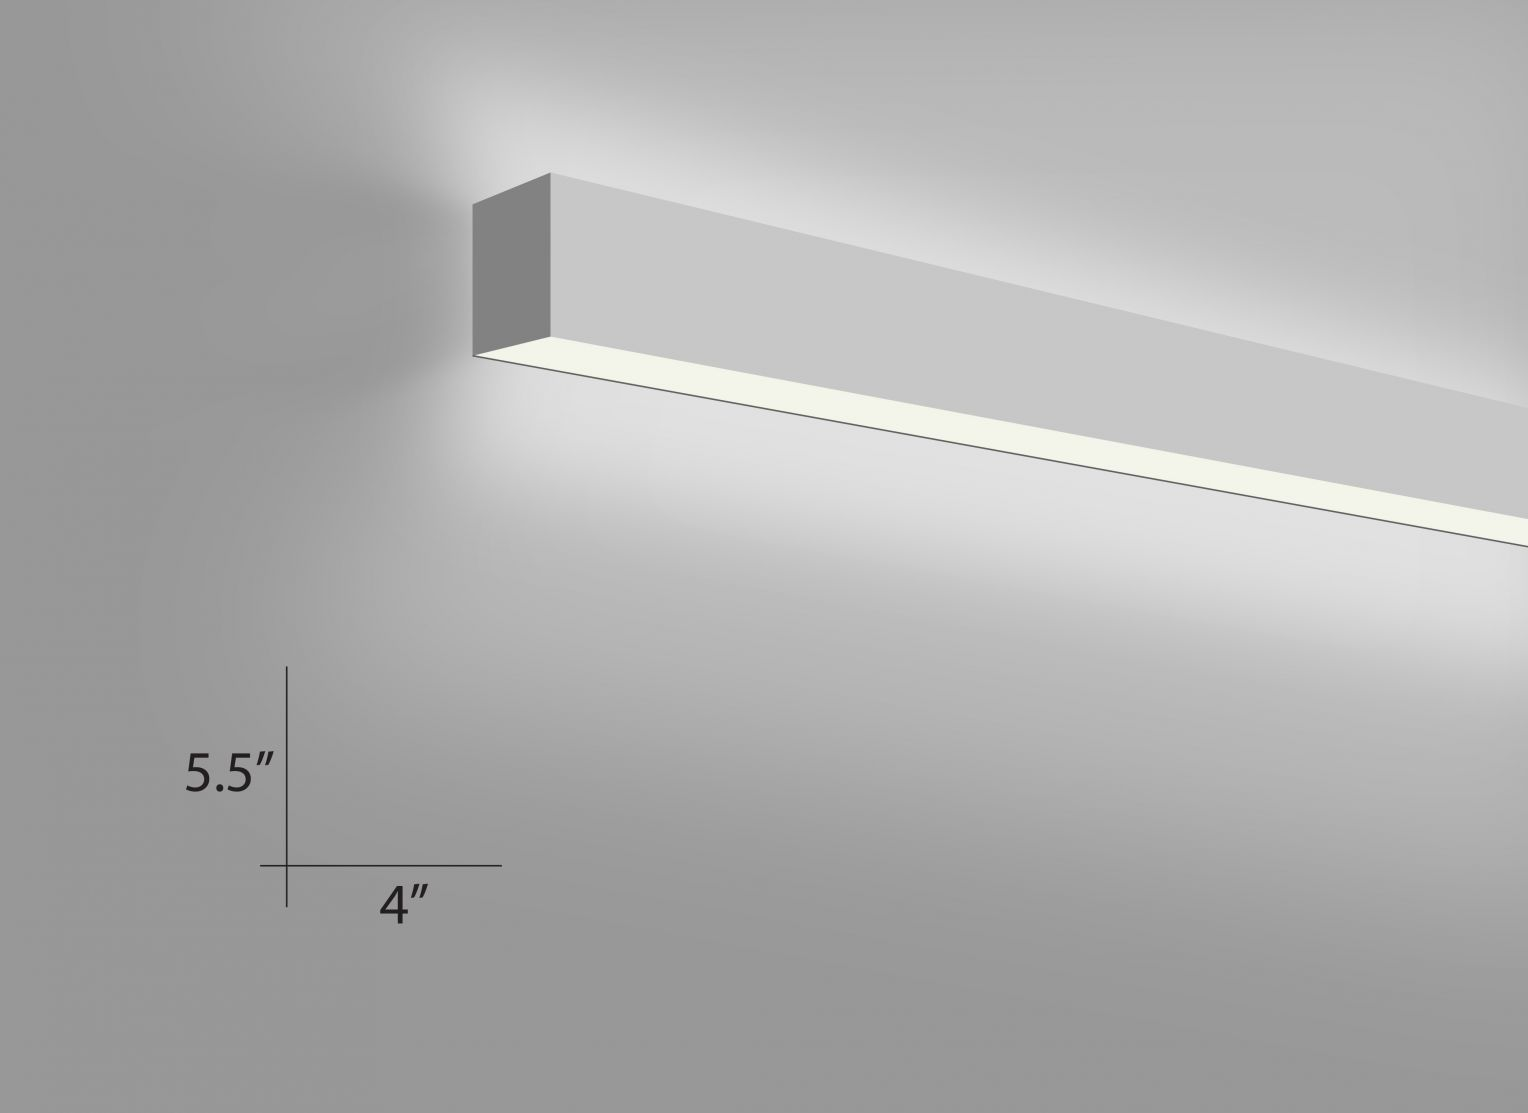 Alcon Lighting 11105-8-W Beam 45 Series Architectural LED 8 Foot ... for Wall Foot Light  585hul